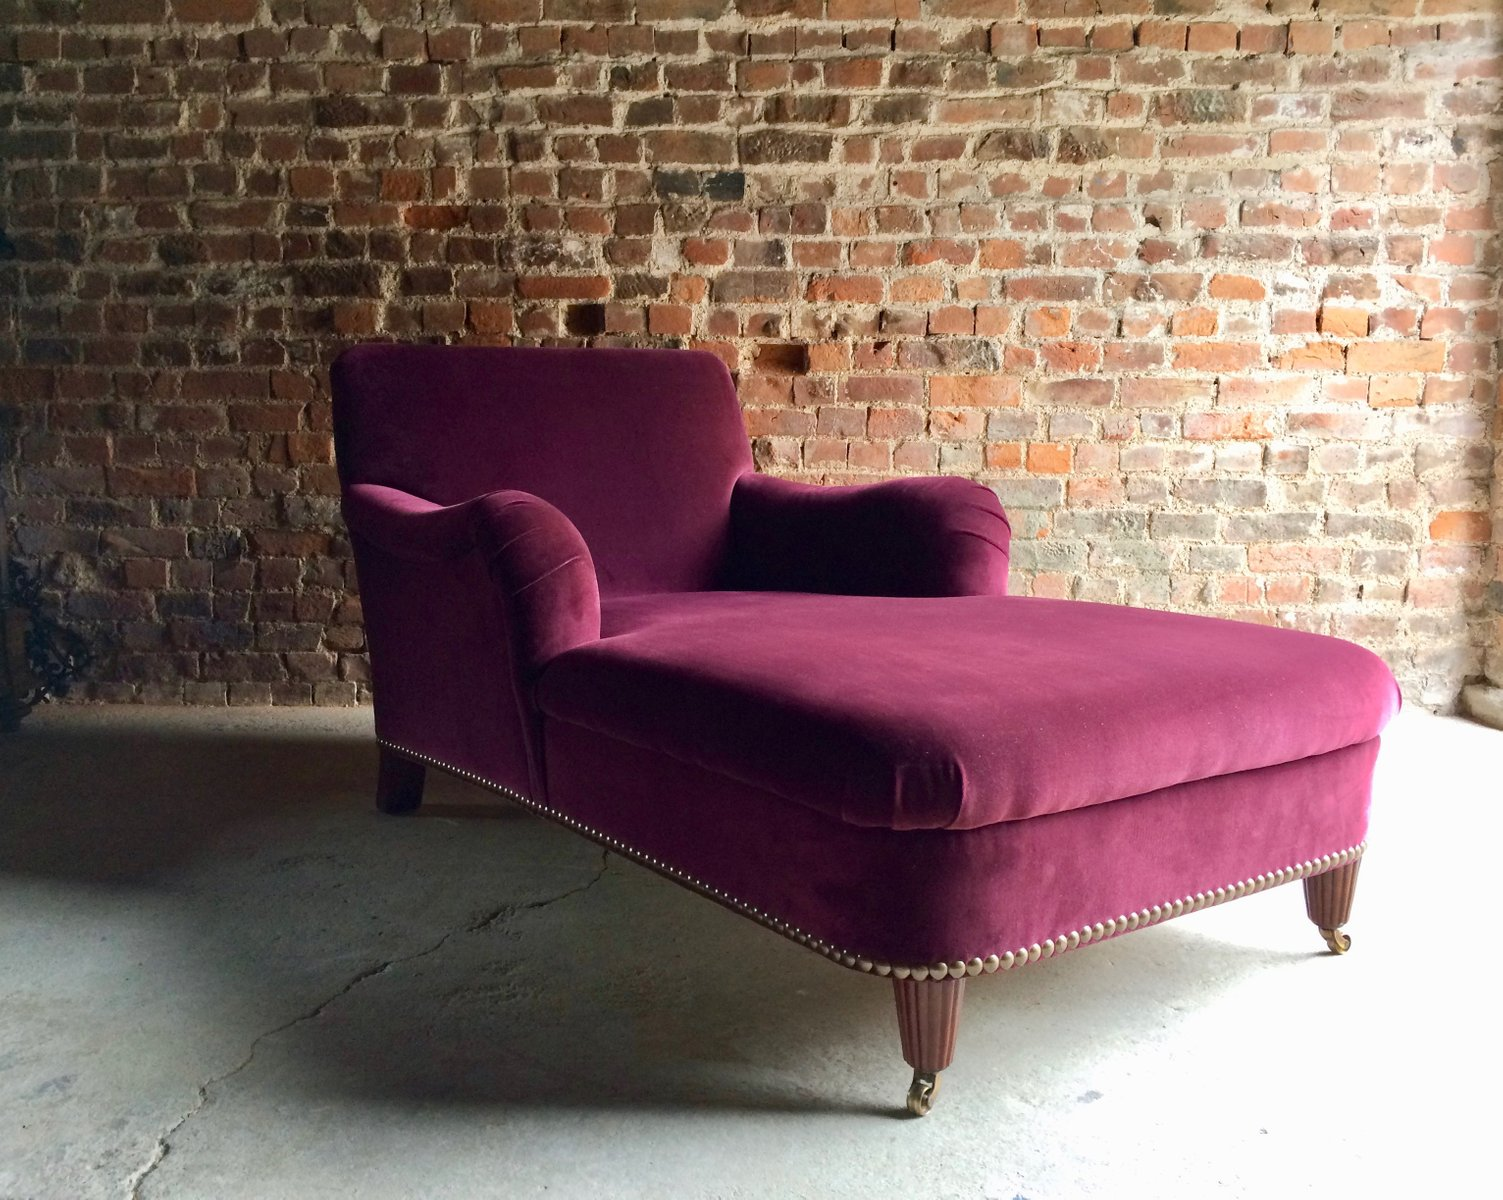 Bohemian chaise longue sofa by ralph lauren 2000s for for Chaise furniture sale